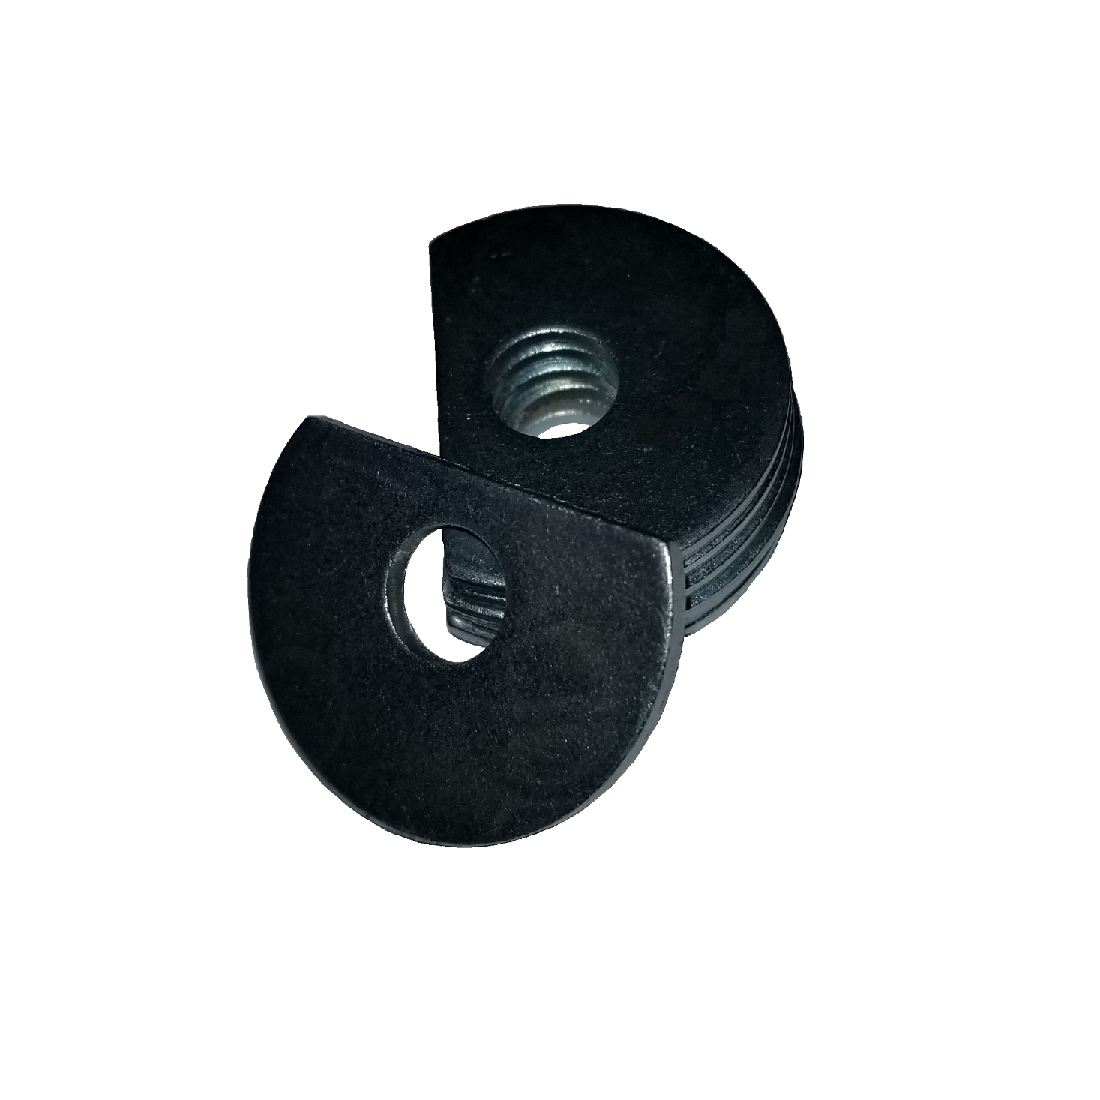 Clipped OD Washer - 0.687 ID, 1.250 OD, 0.125 Thick, Low Carbon Steel - Soft, Zinc & Yellow